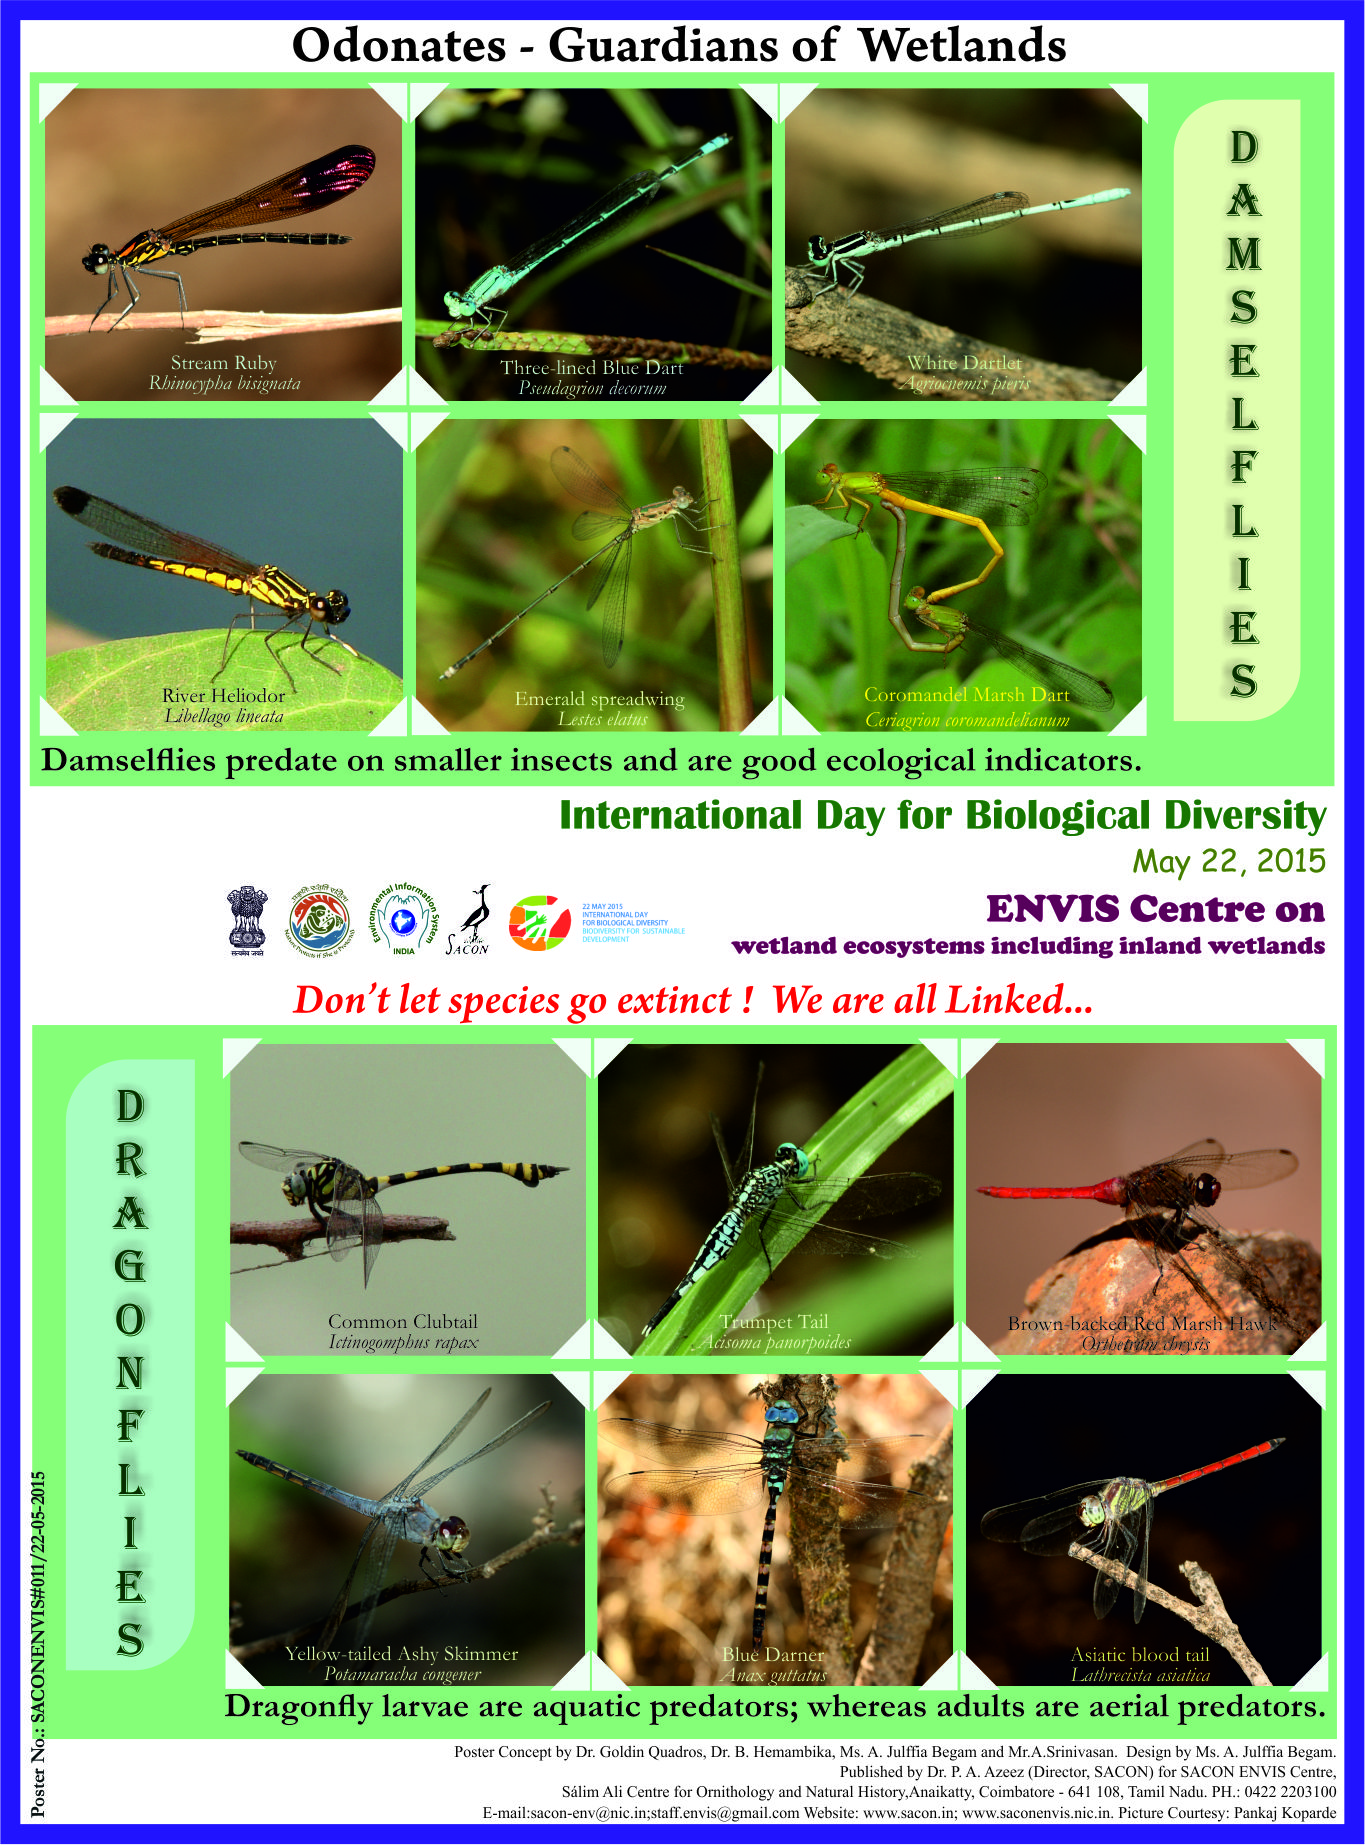 international day for biological diversity 2015 envis centre on wetland ecosystems including inland wetlands celebrated the international day for biological diversity by releasing a poster entitled